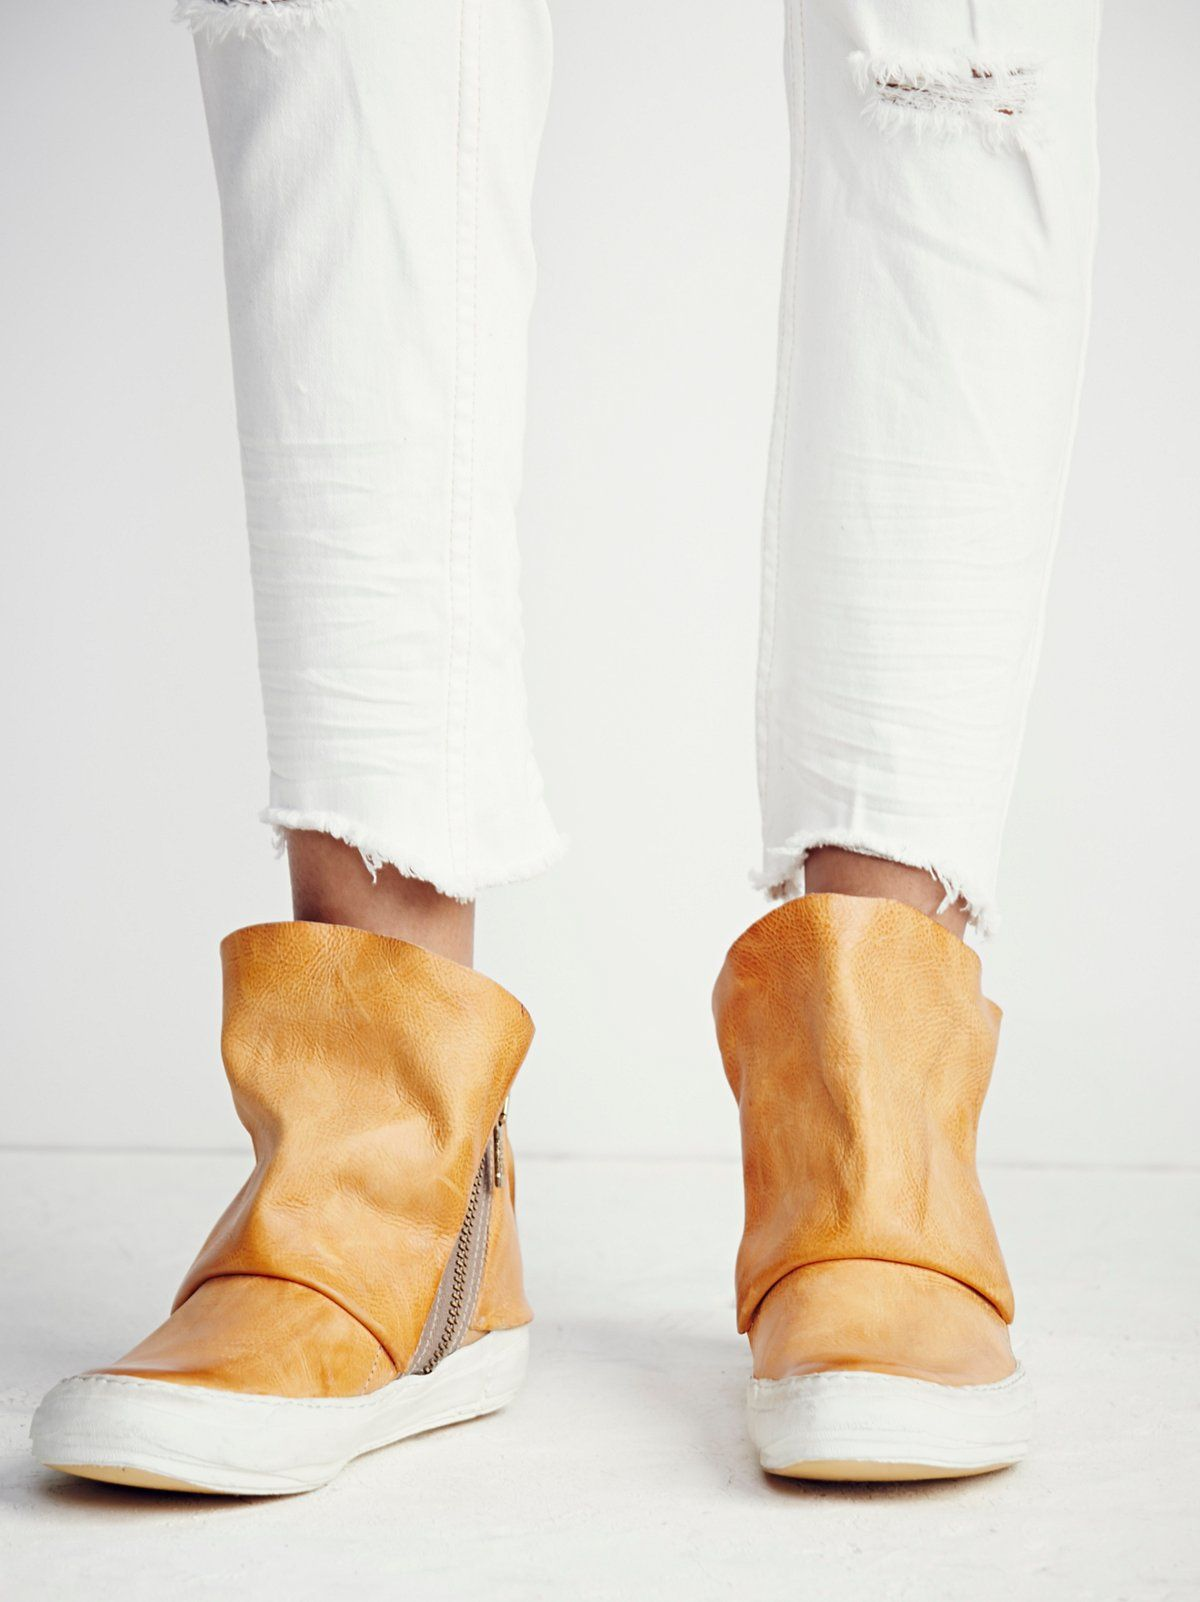 Solera High-Top Sneaker | Fall shoes, Shoes, Summer shoes